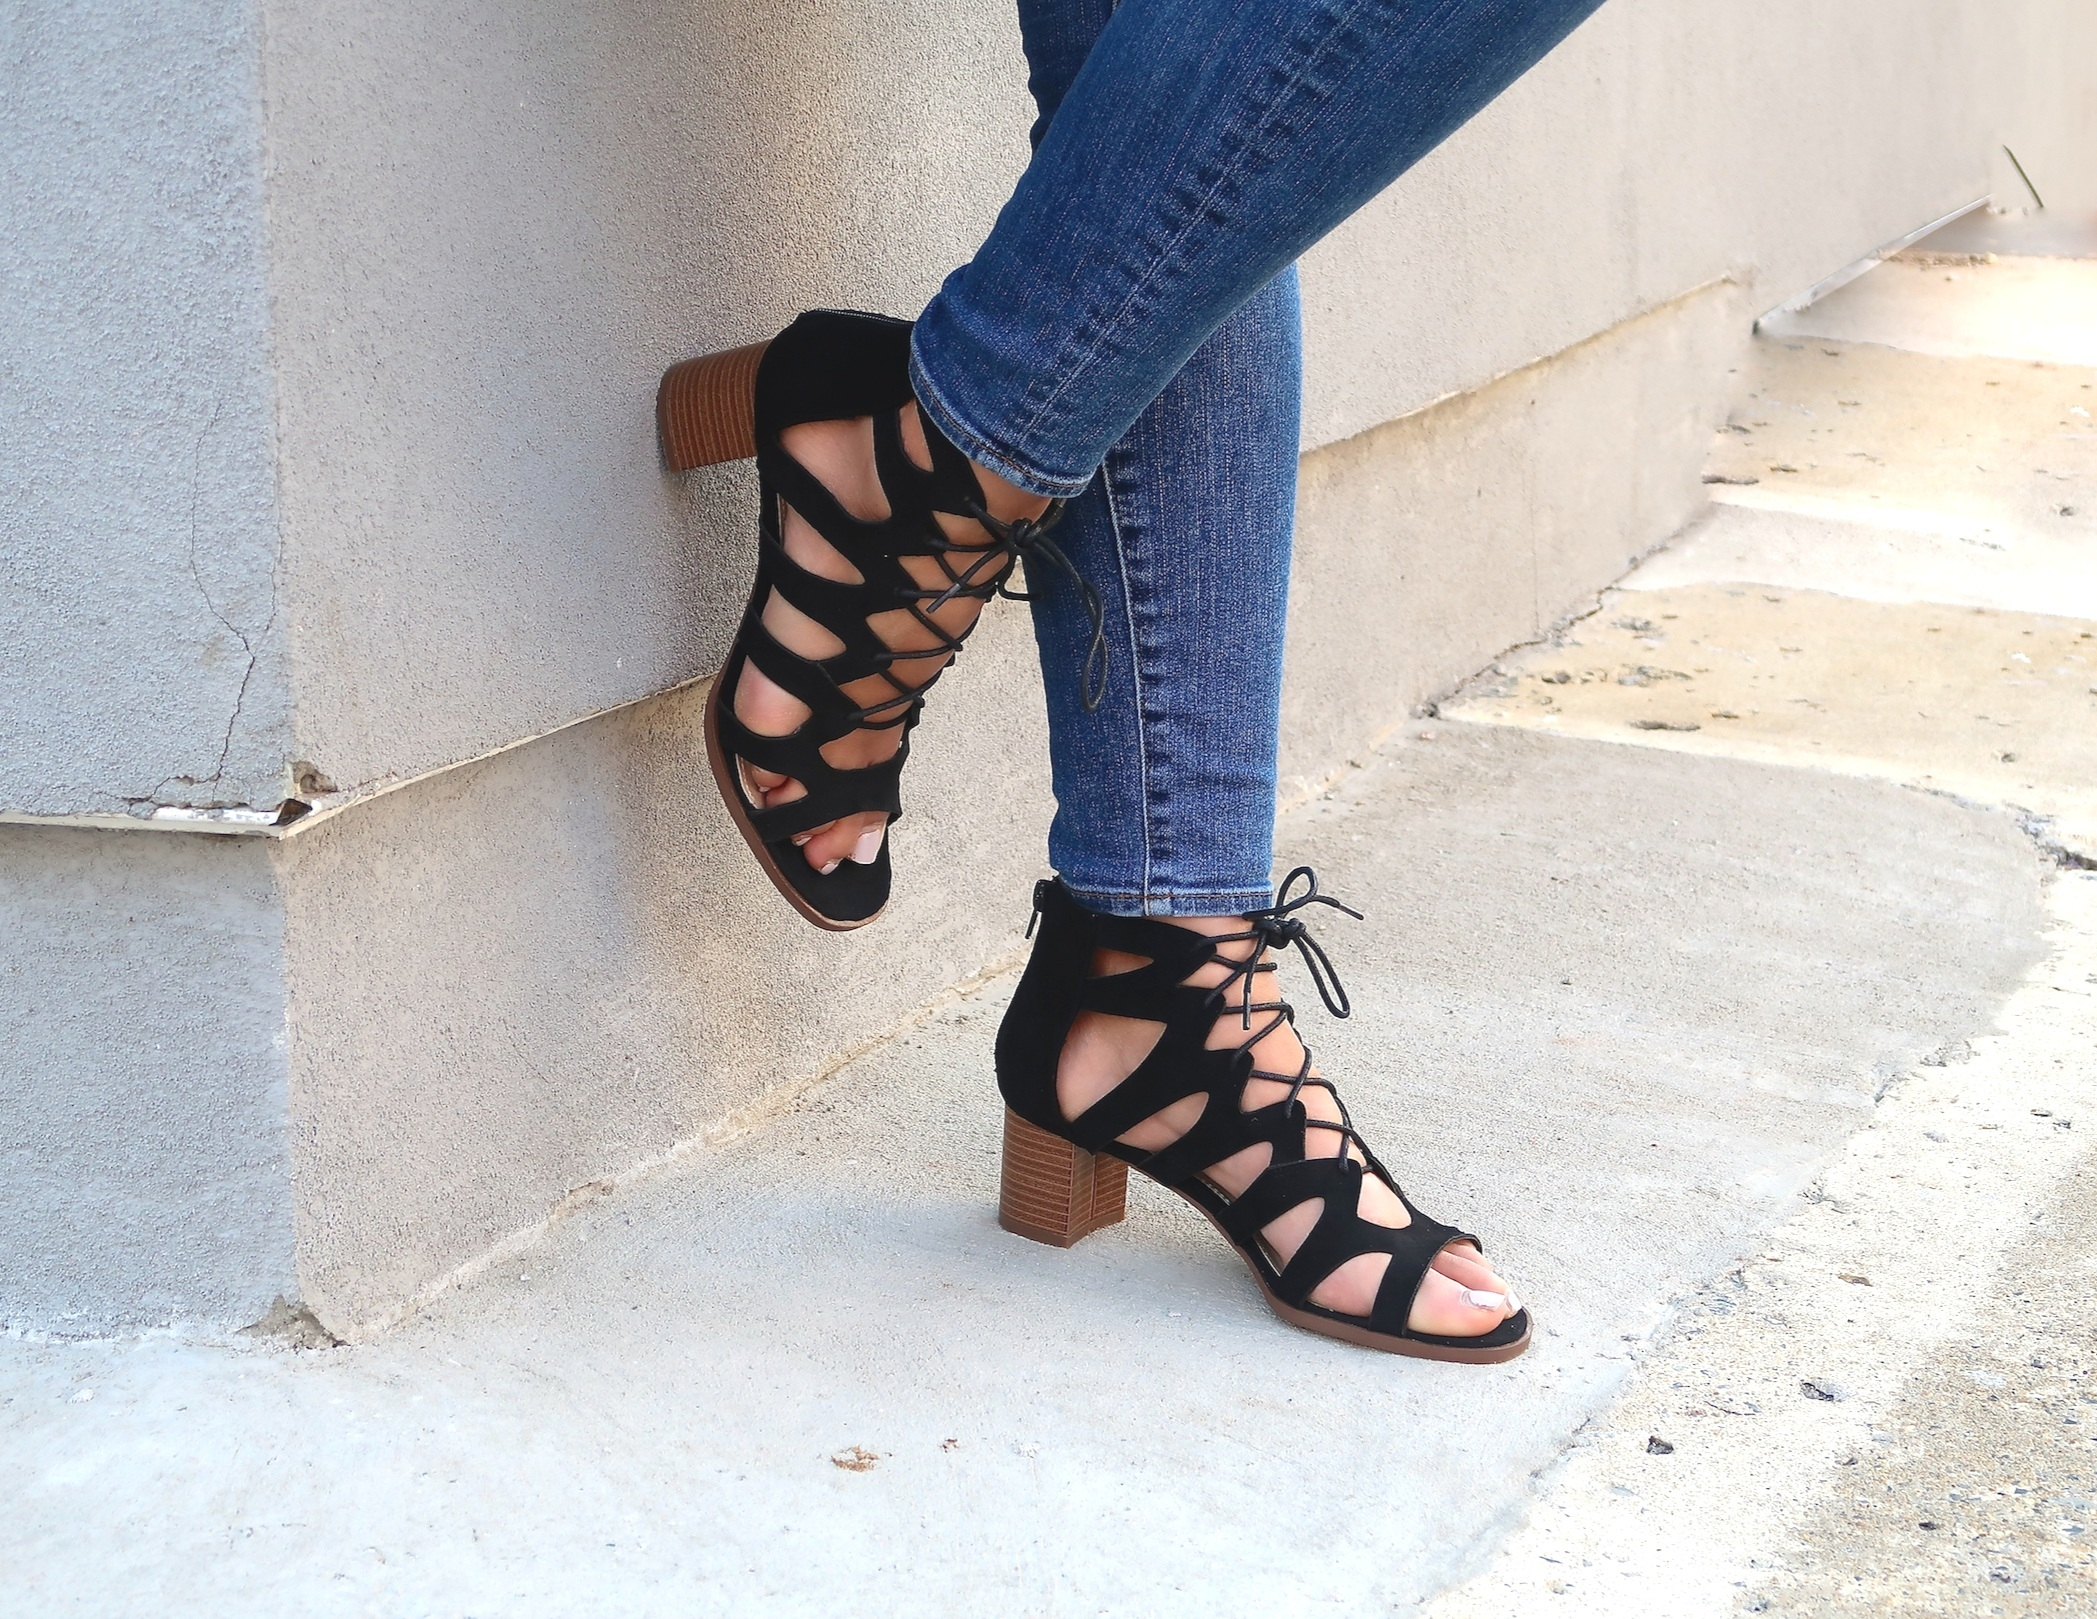 spring-lookbook-justfab-sandals-caged-heels.JPG